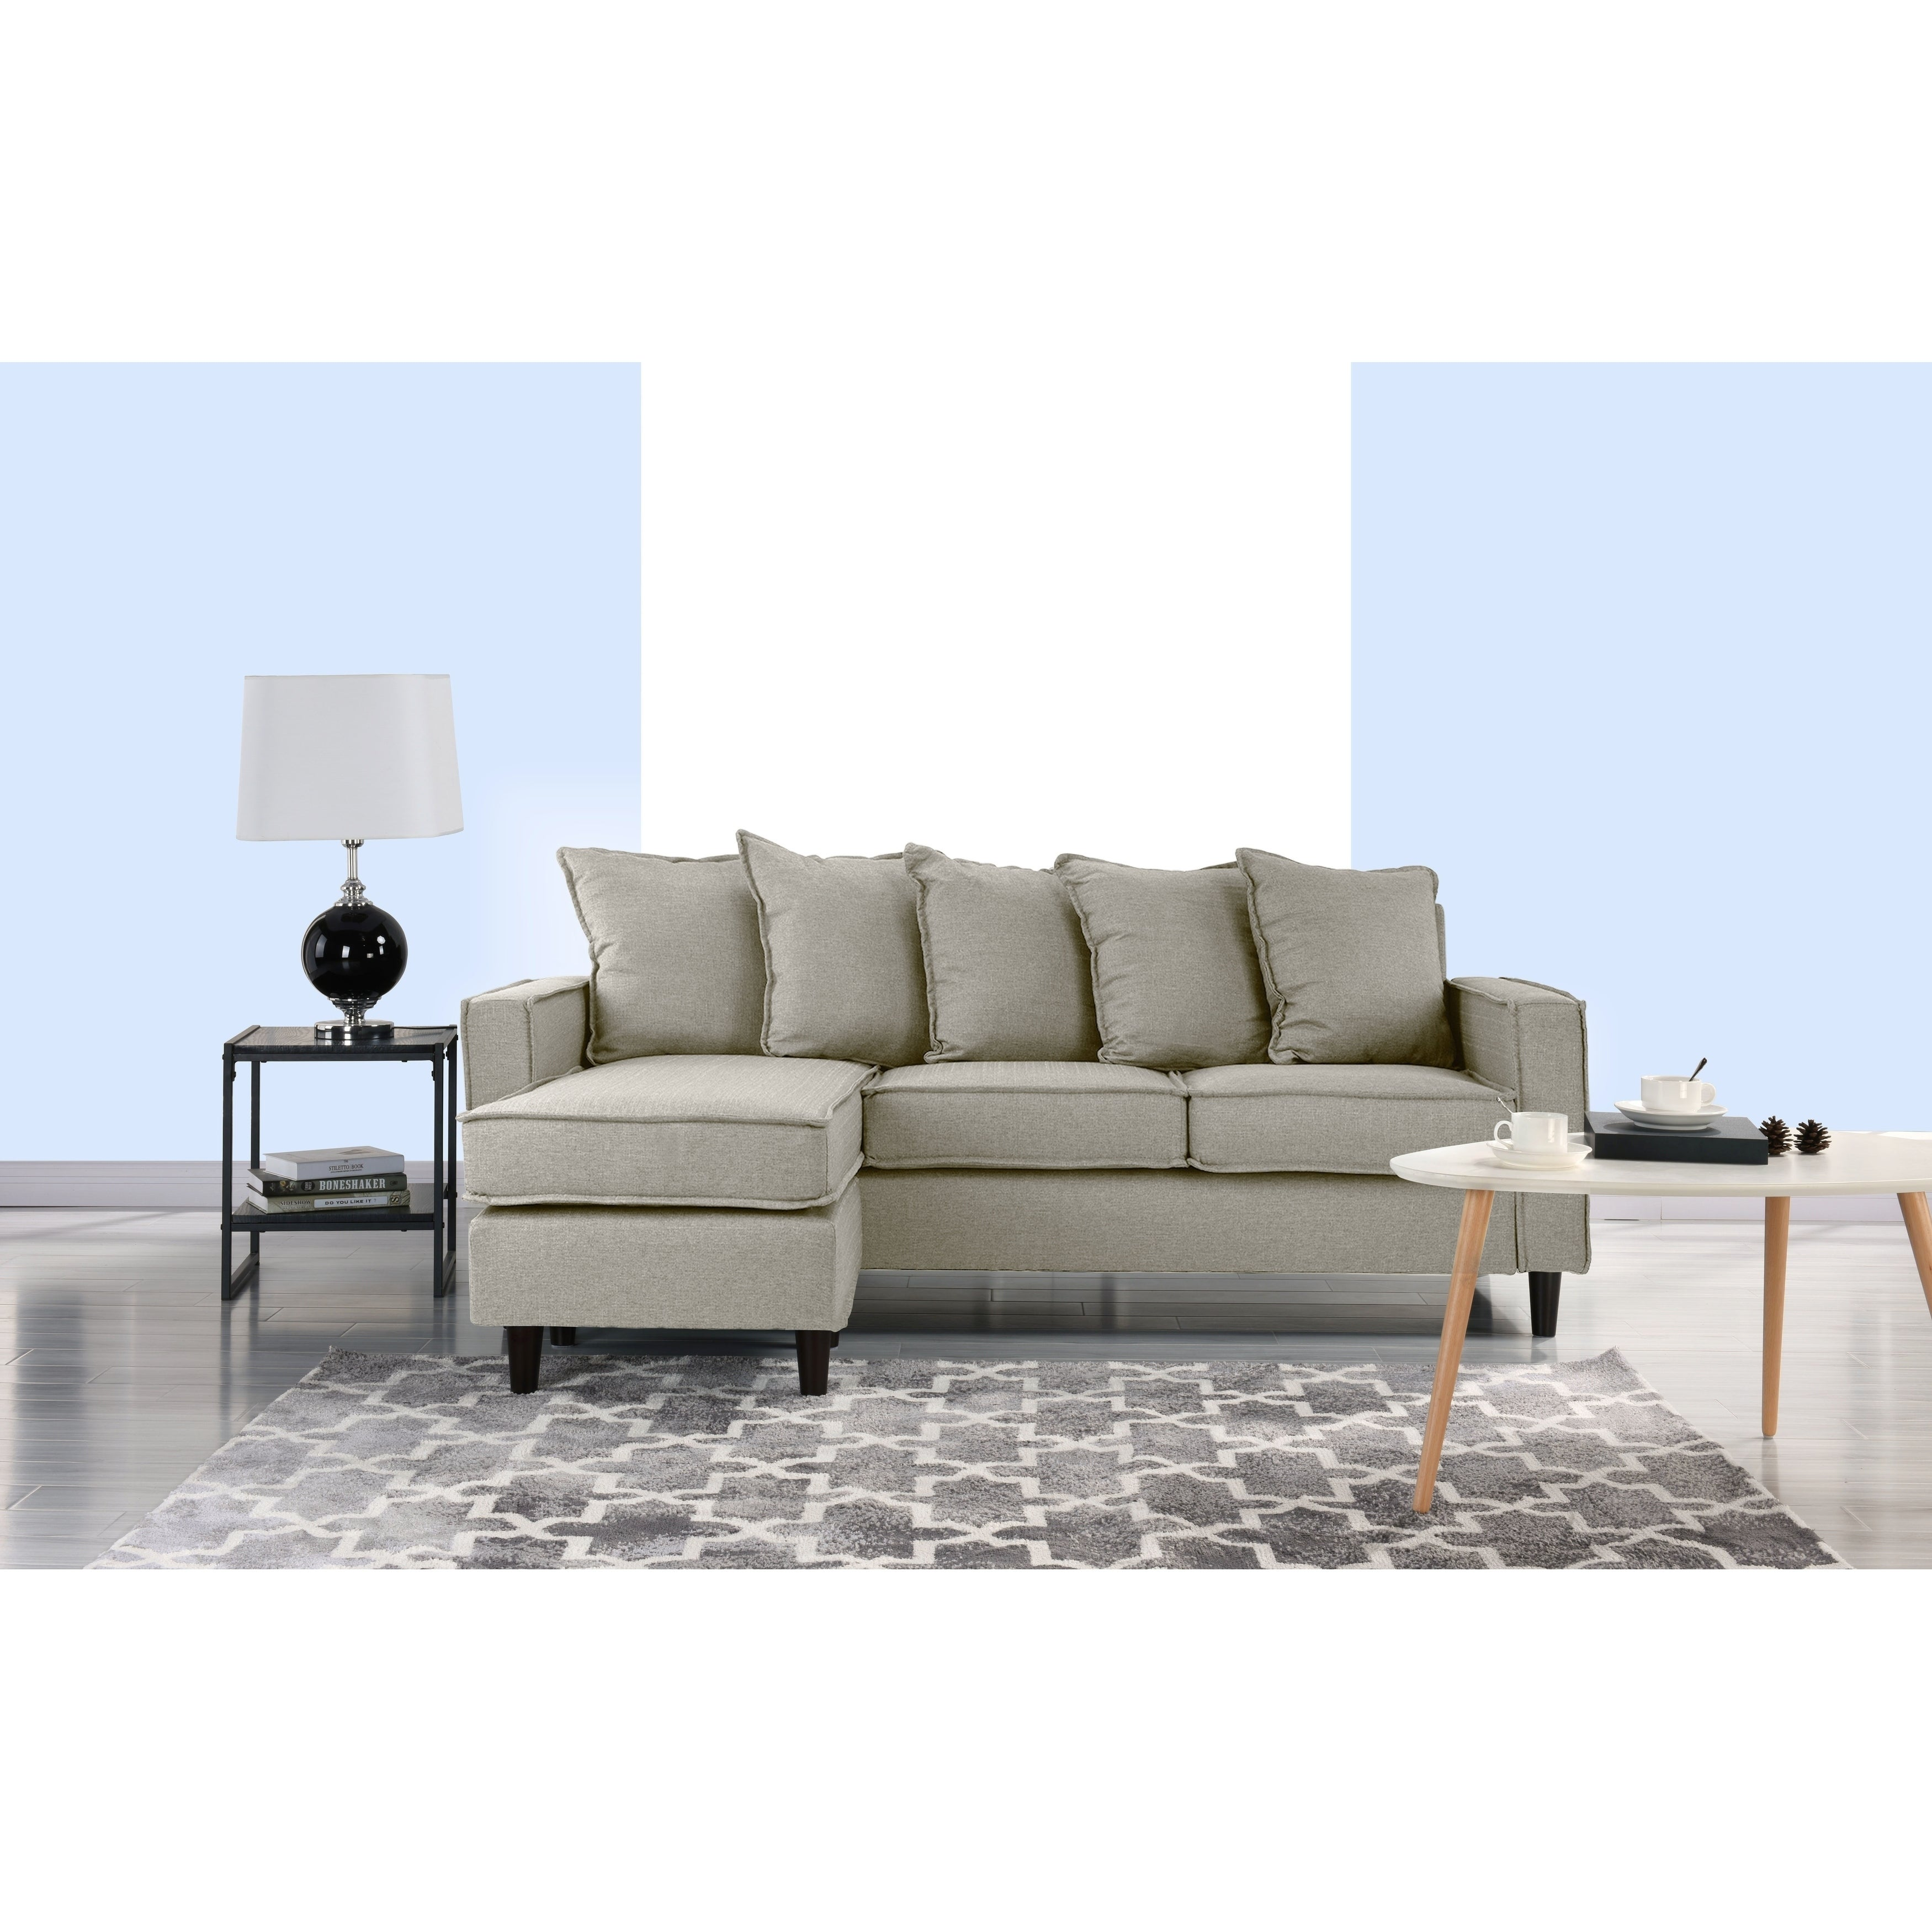 Shop Modern Sectional Sofa Small Space Configurable Couch Free